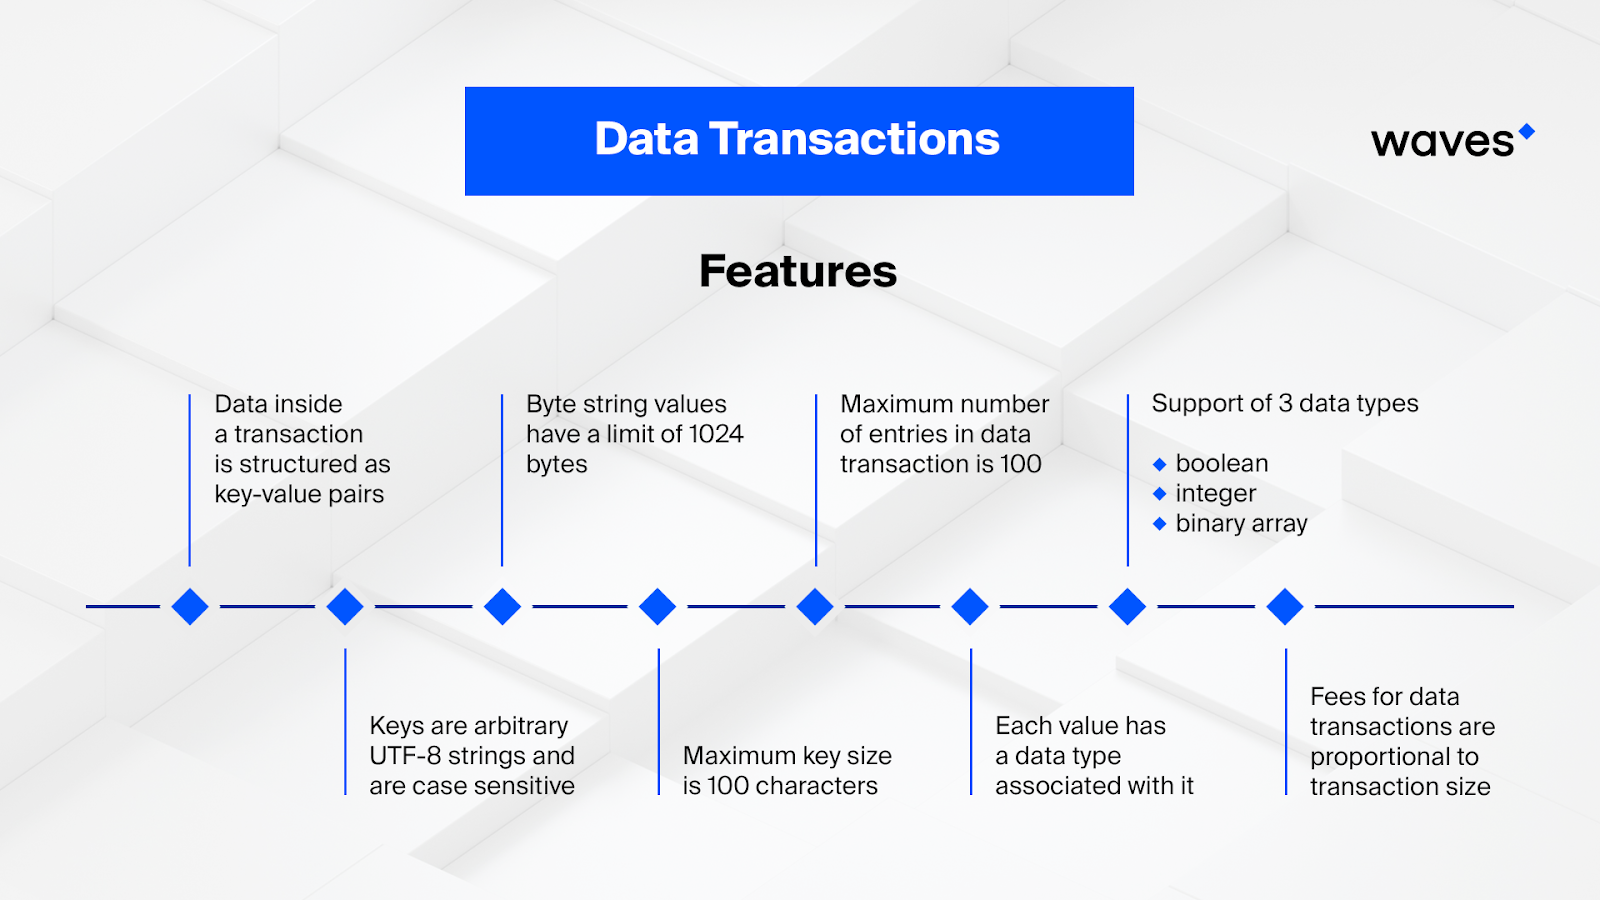 Data Transactions Illustrated - By